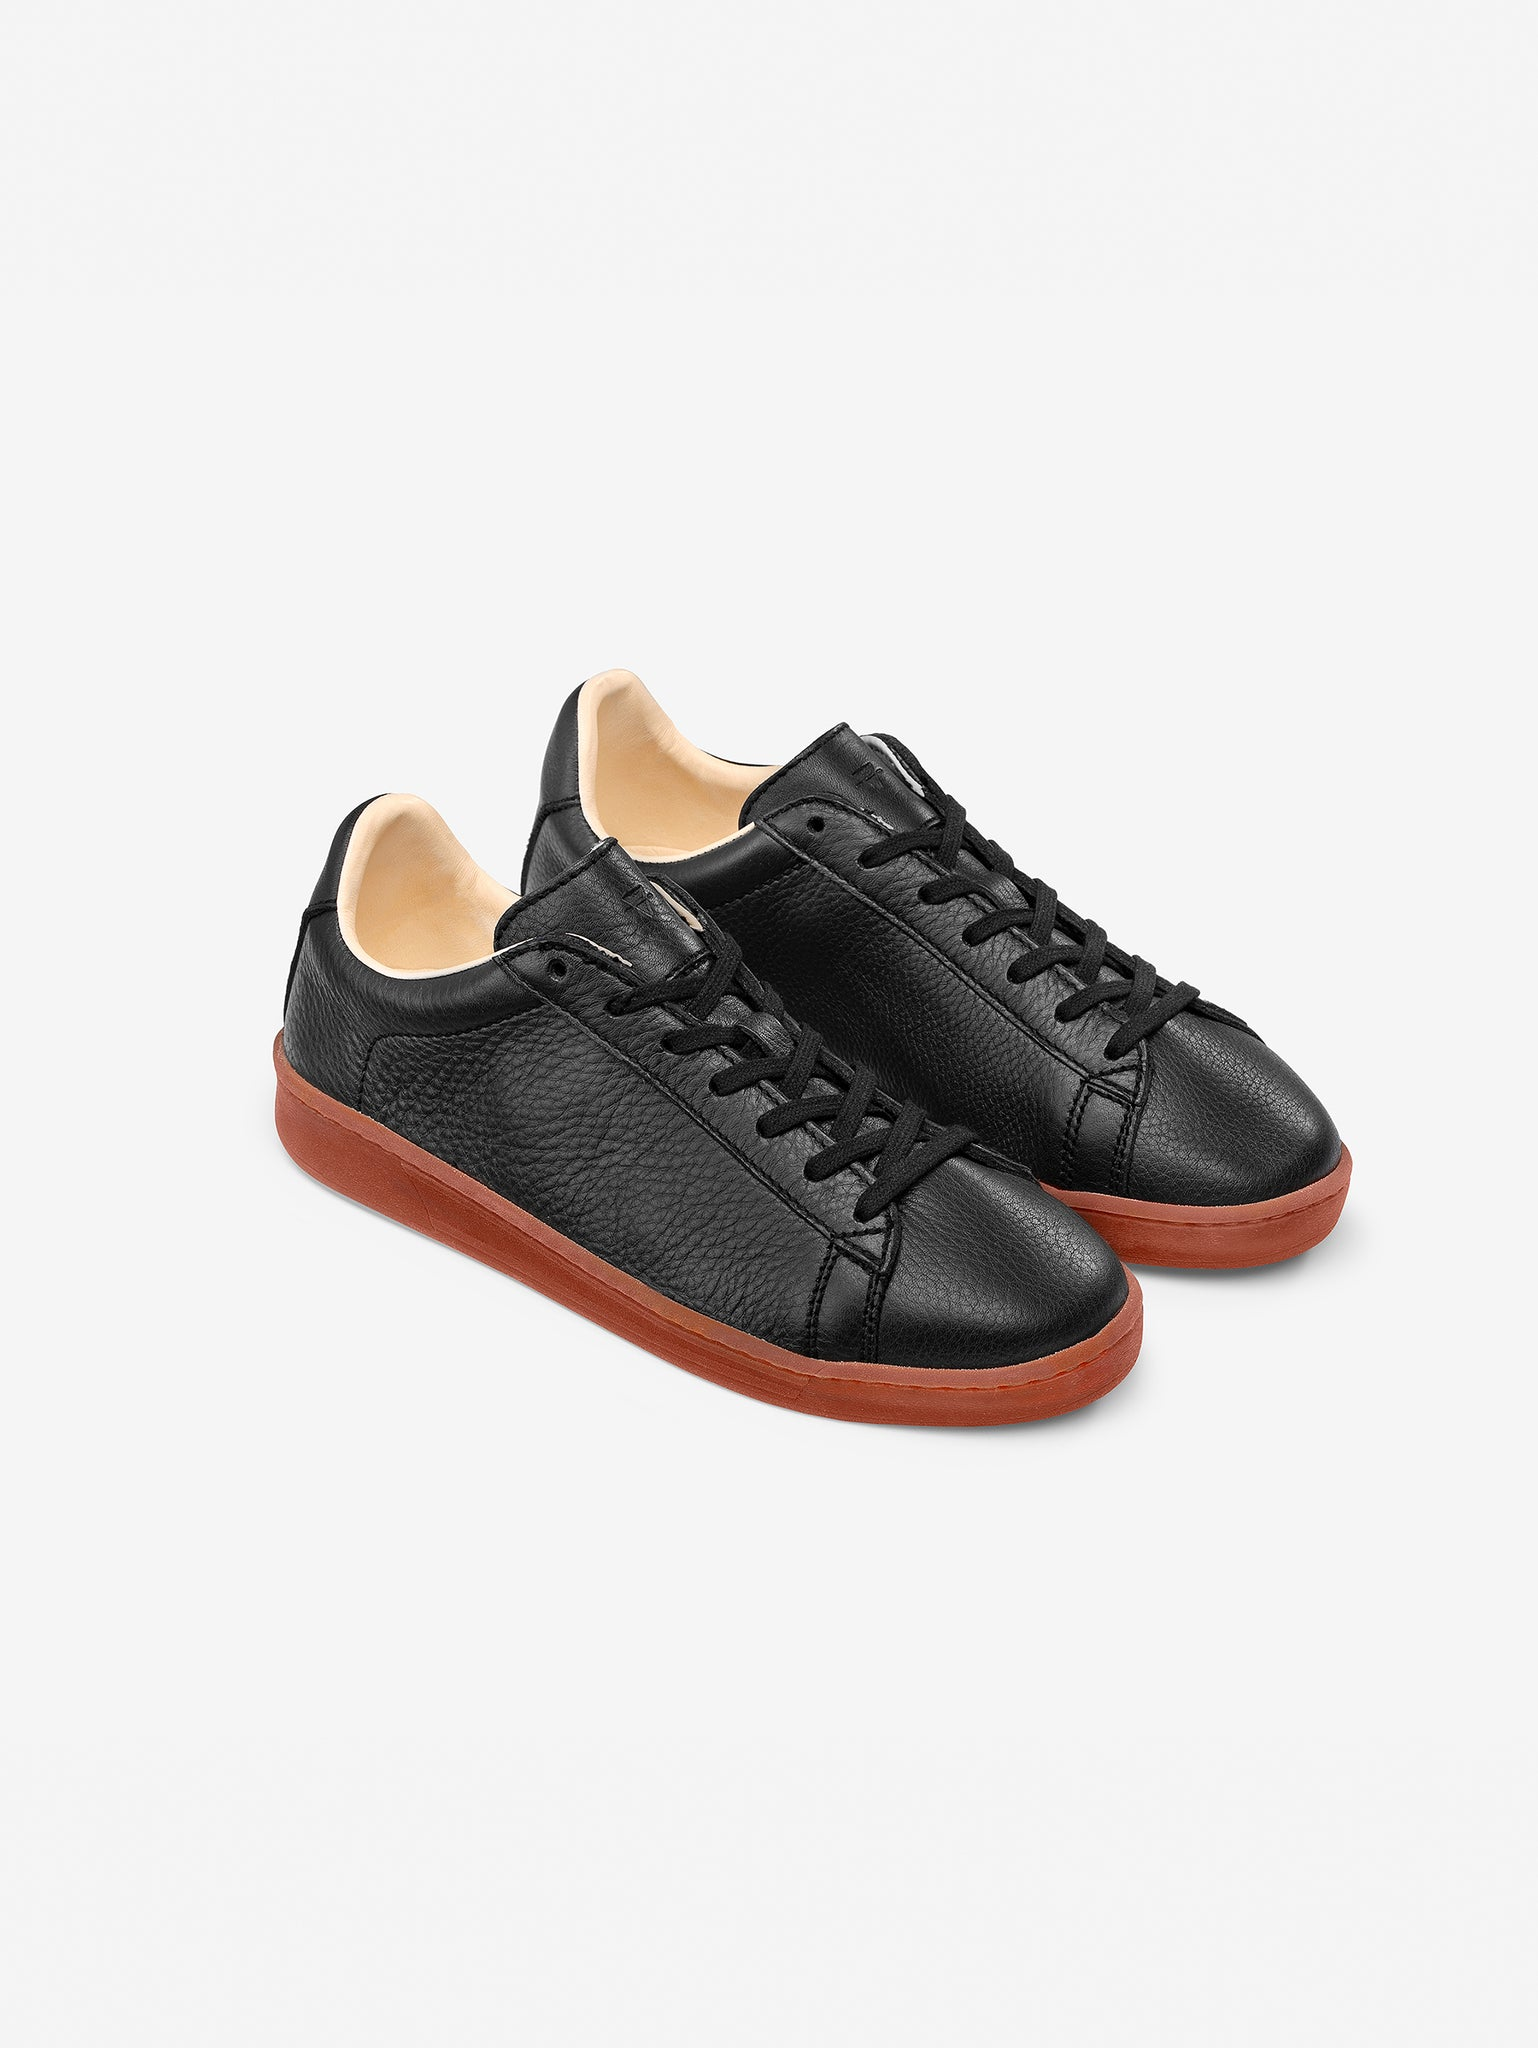 1970 - Black/Red Leather Trainer